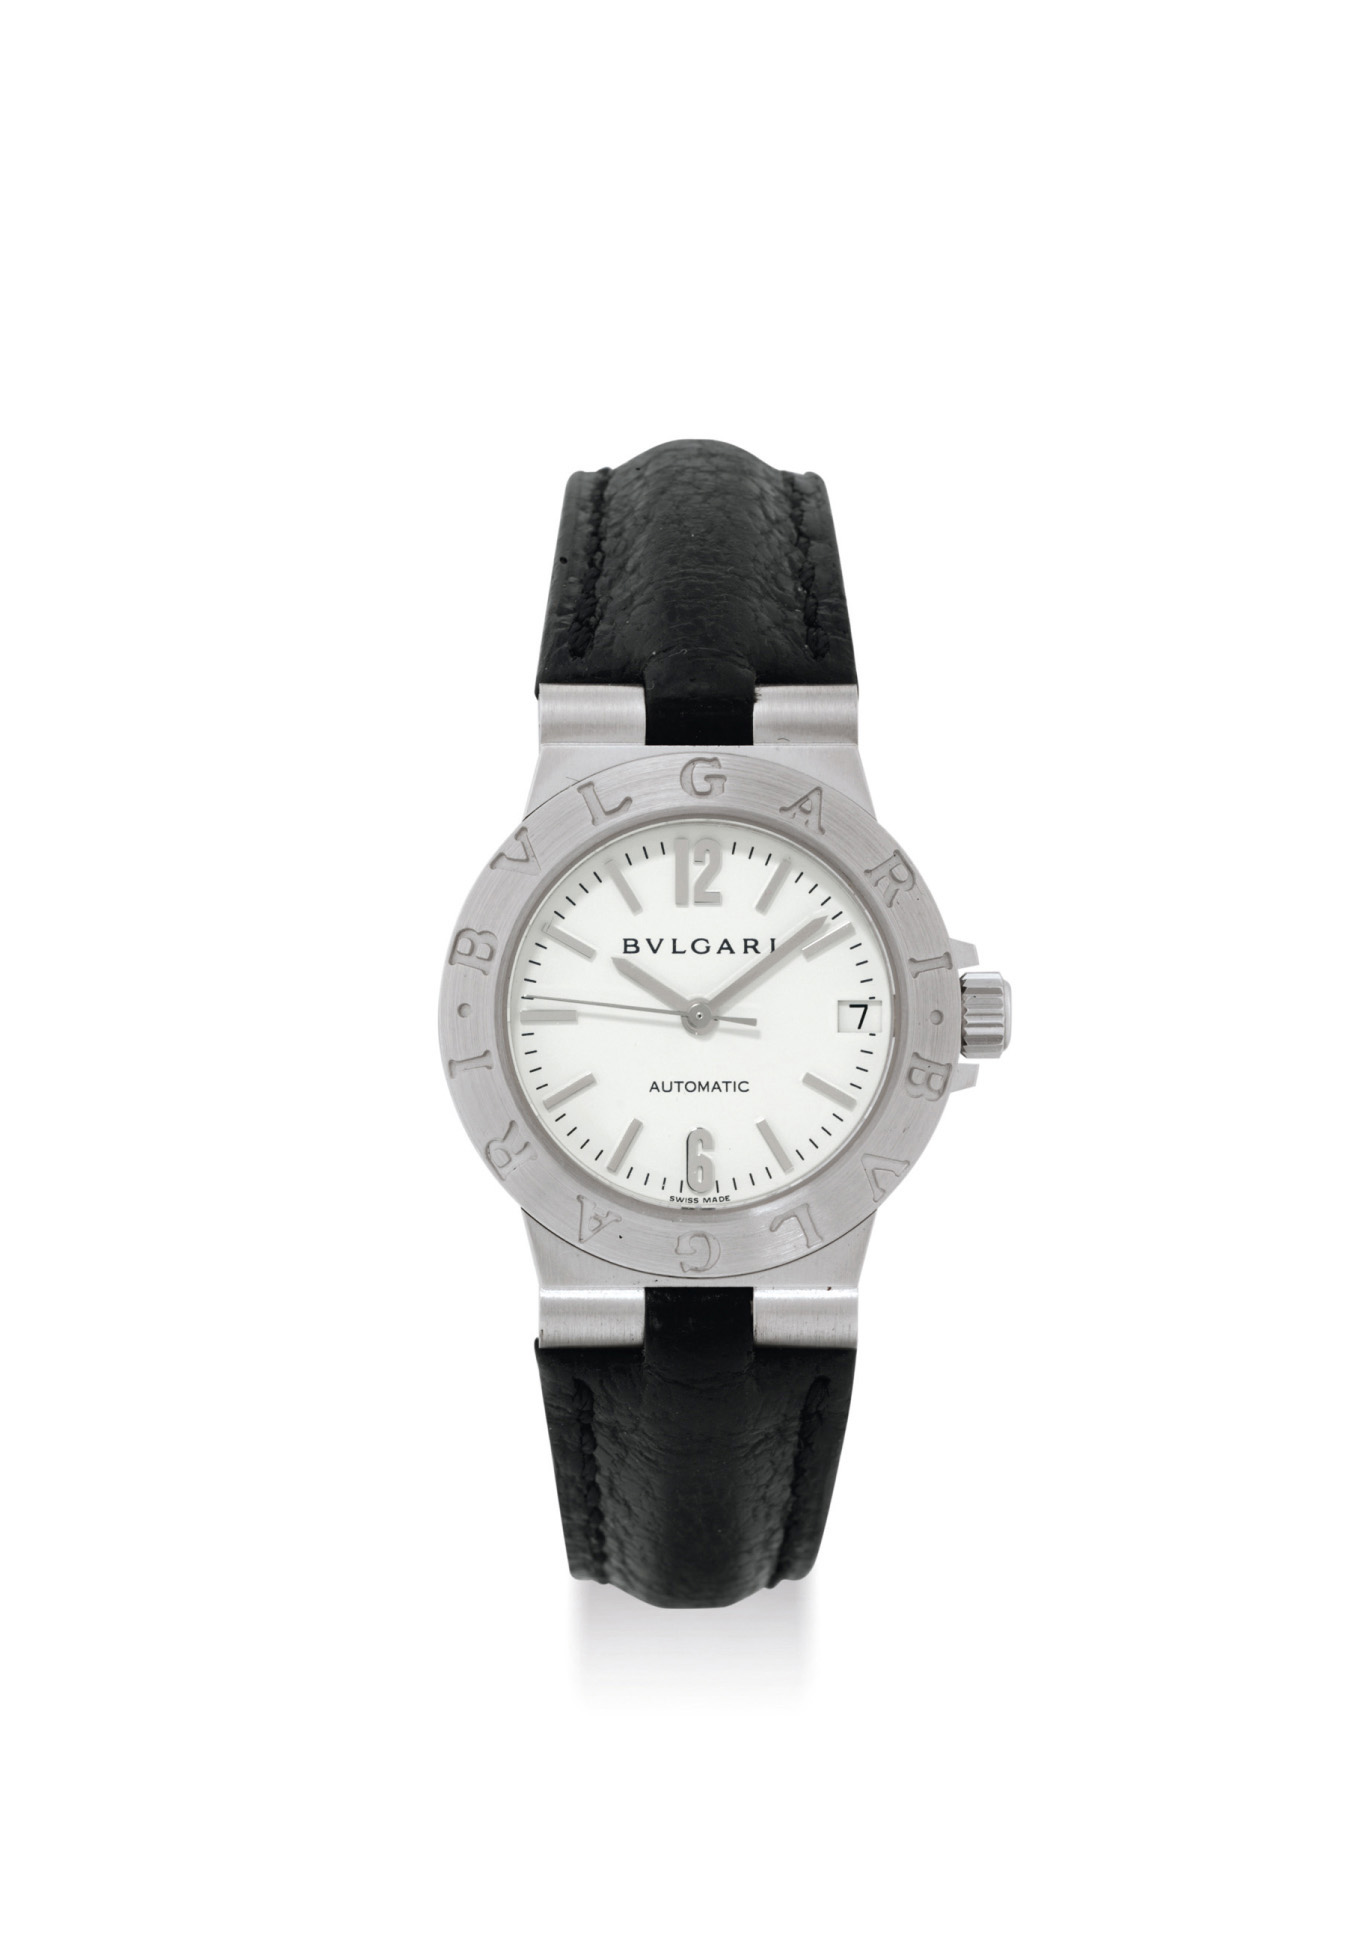 BULGARI. A LADY'S 18K WHITE GO